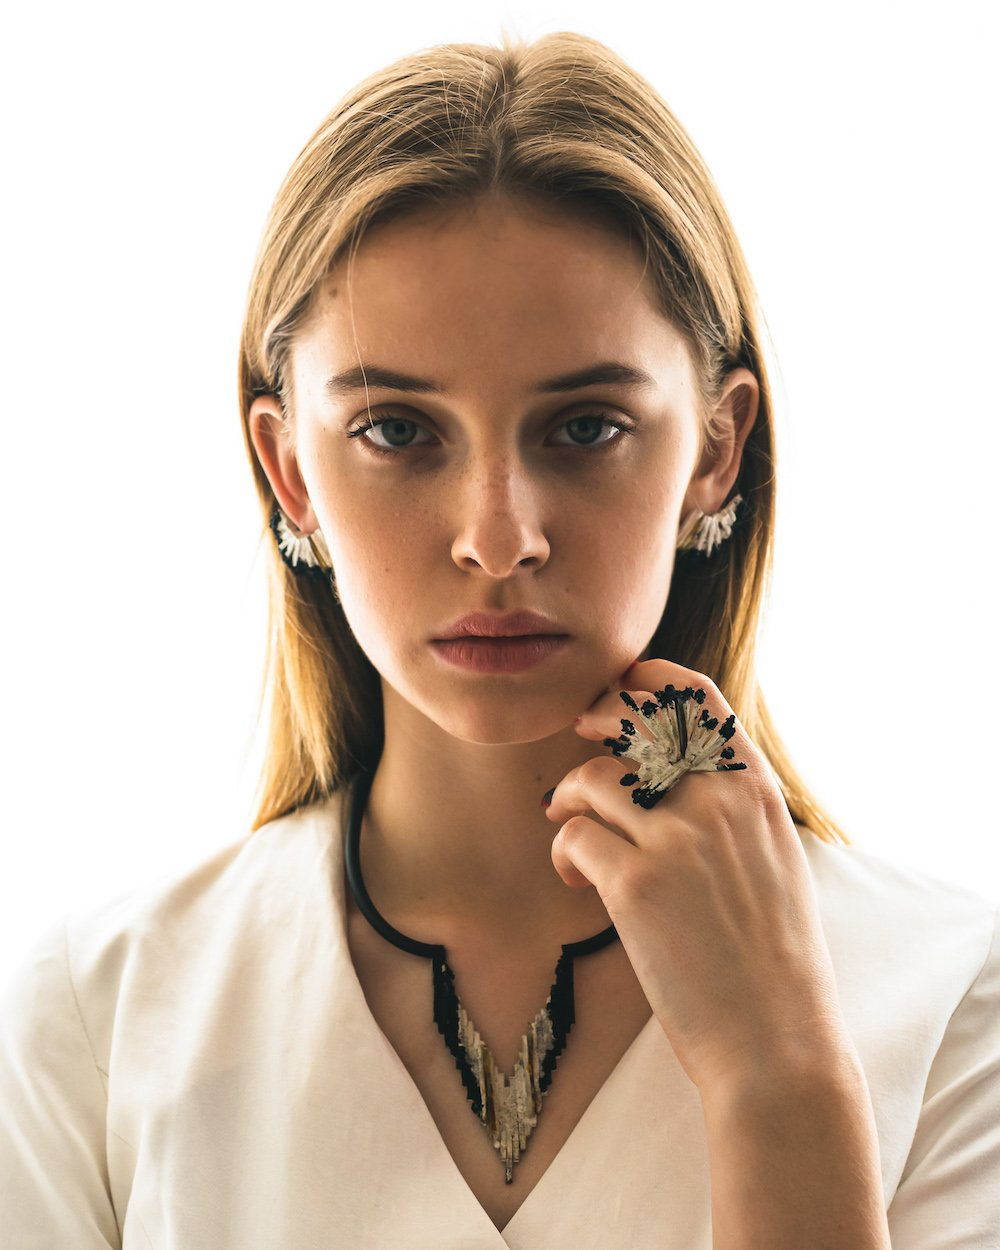 Dalius Ilginis's silver and amber Anxiety collection was among the winners of the Fashion Accessory category